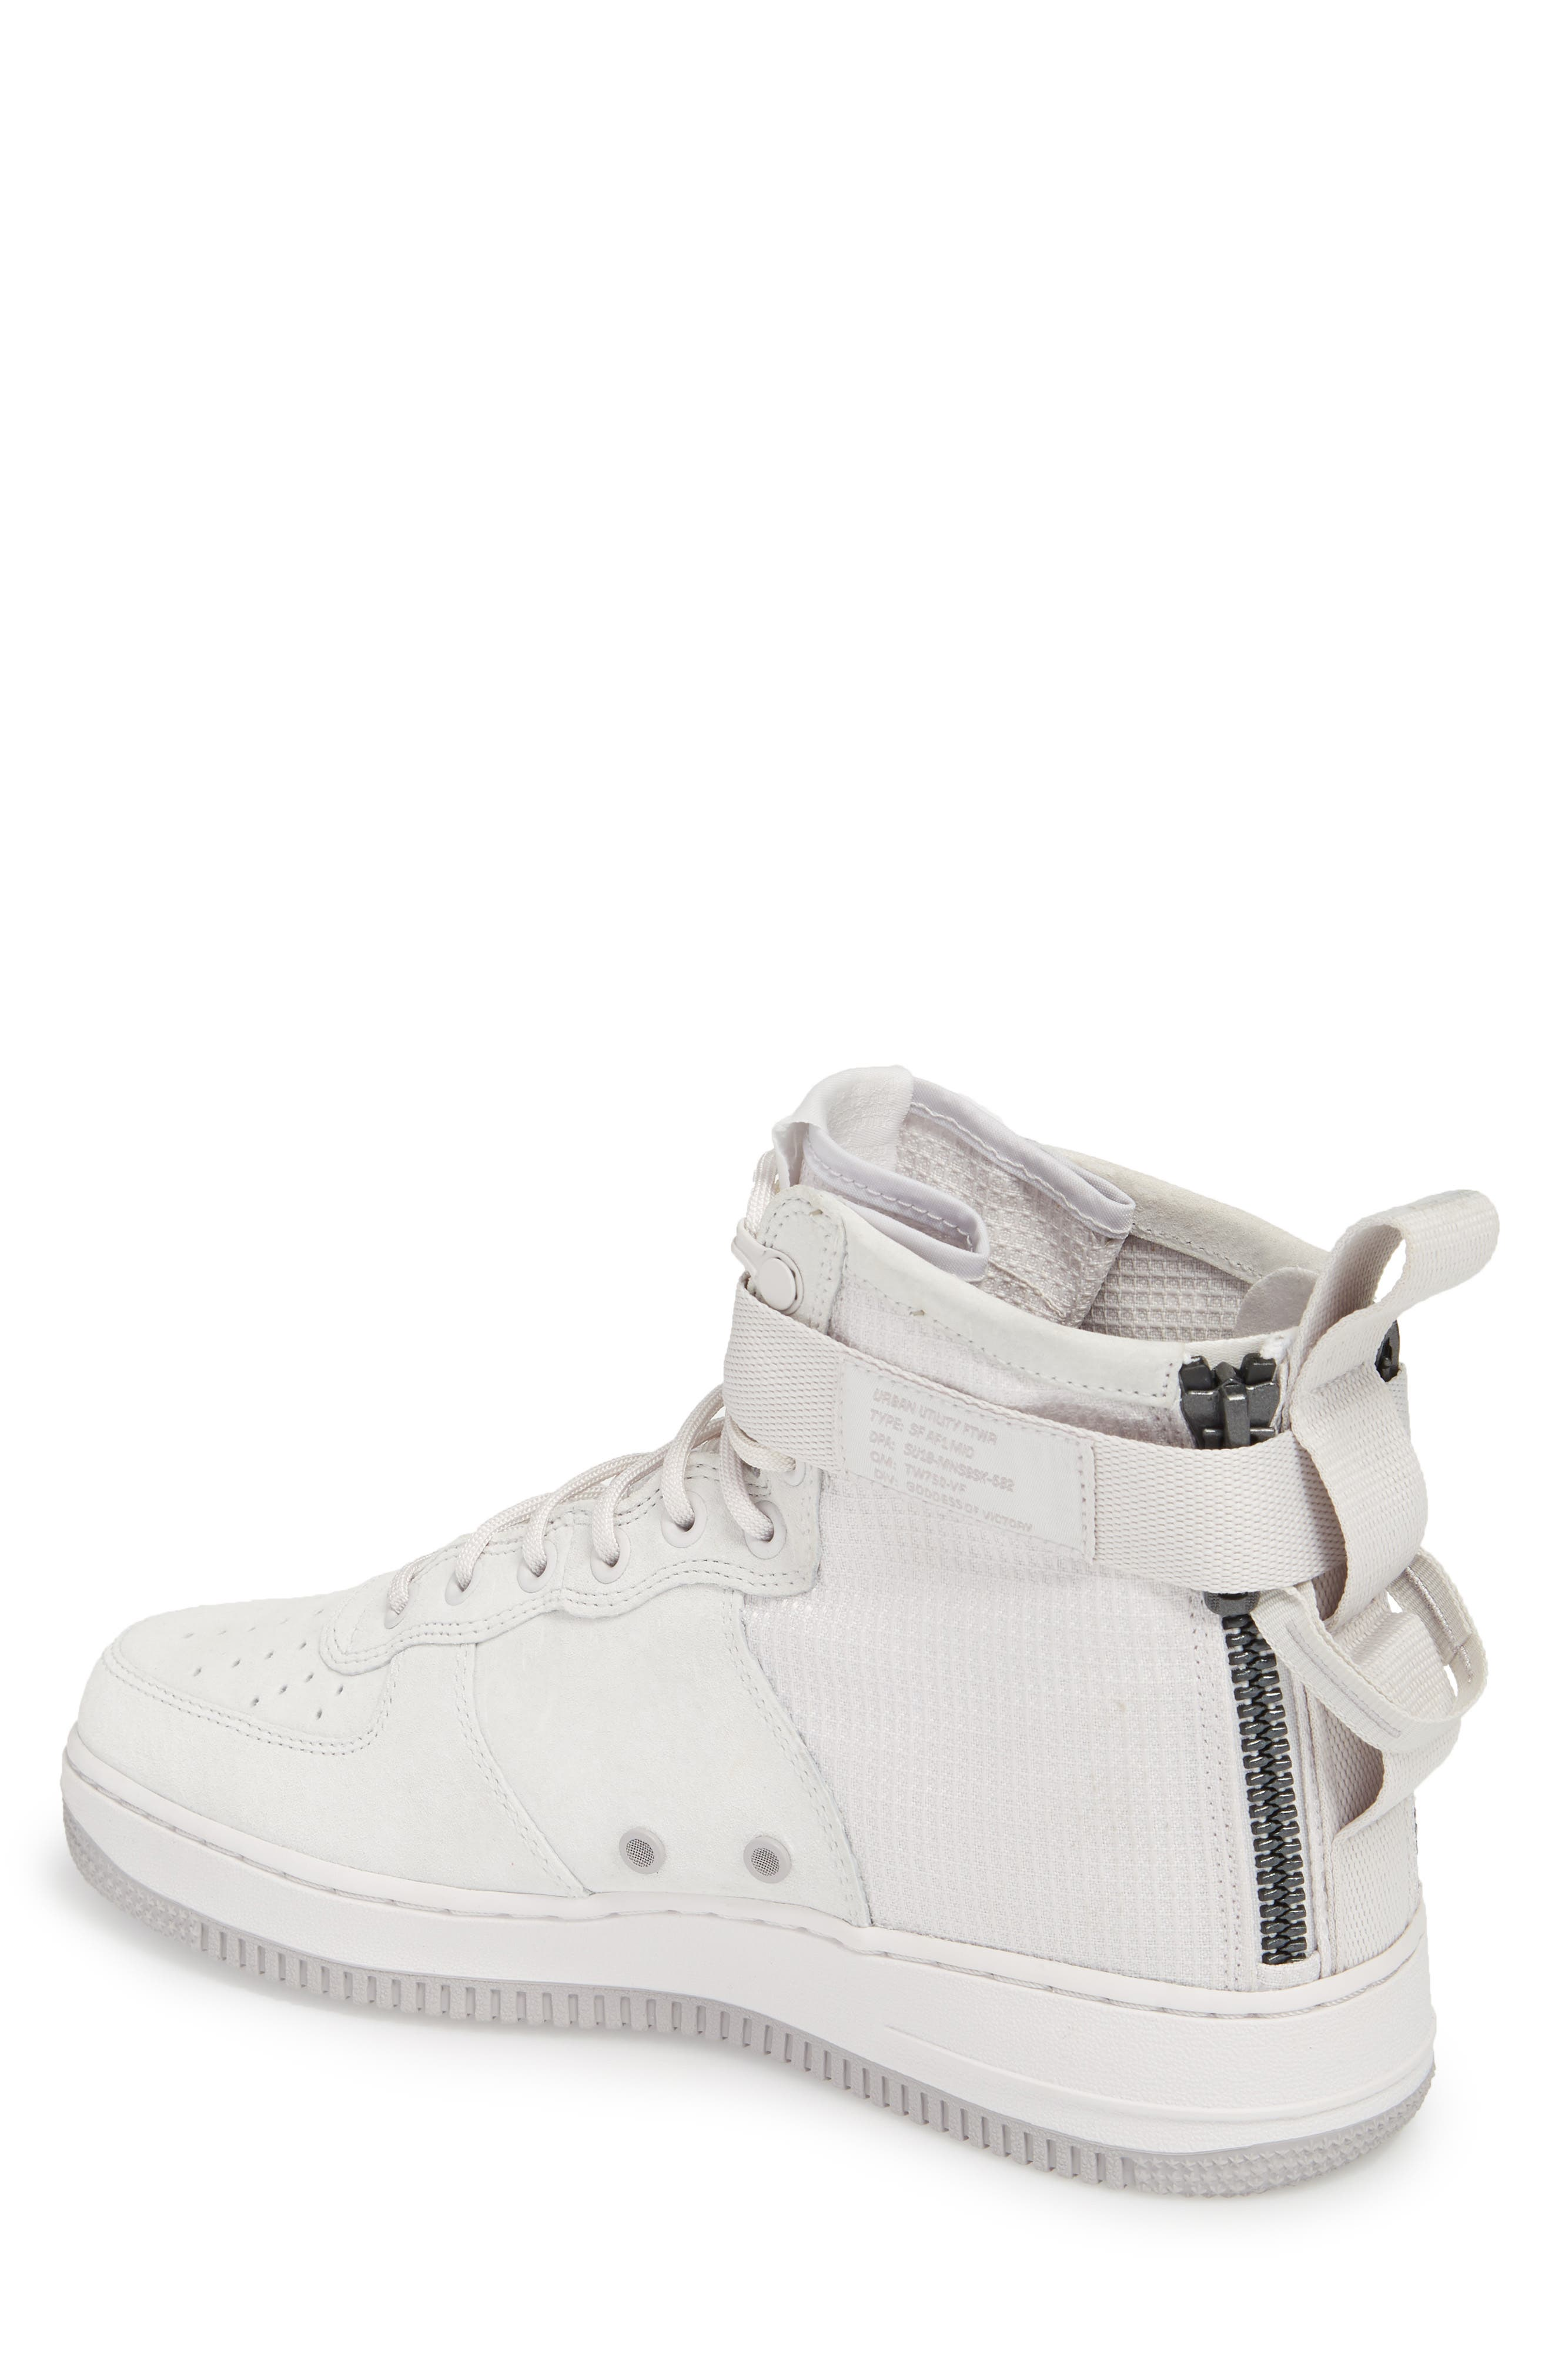 SF Air Force 1 Mid Suede Sneaker,                             Alternate thumbnail 2, color,                             021